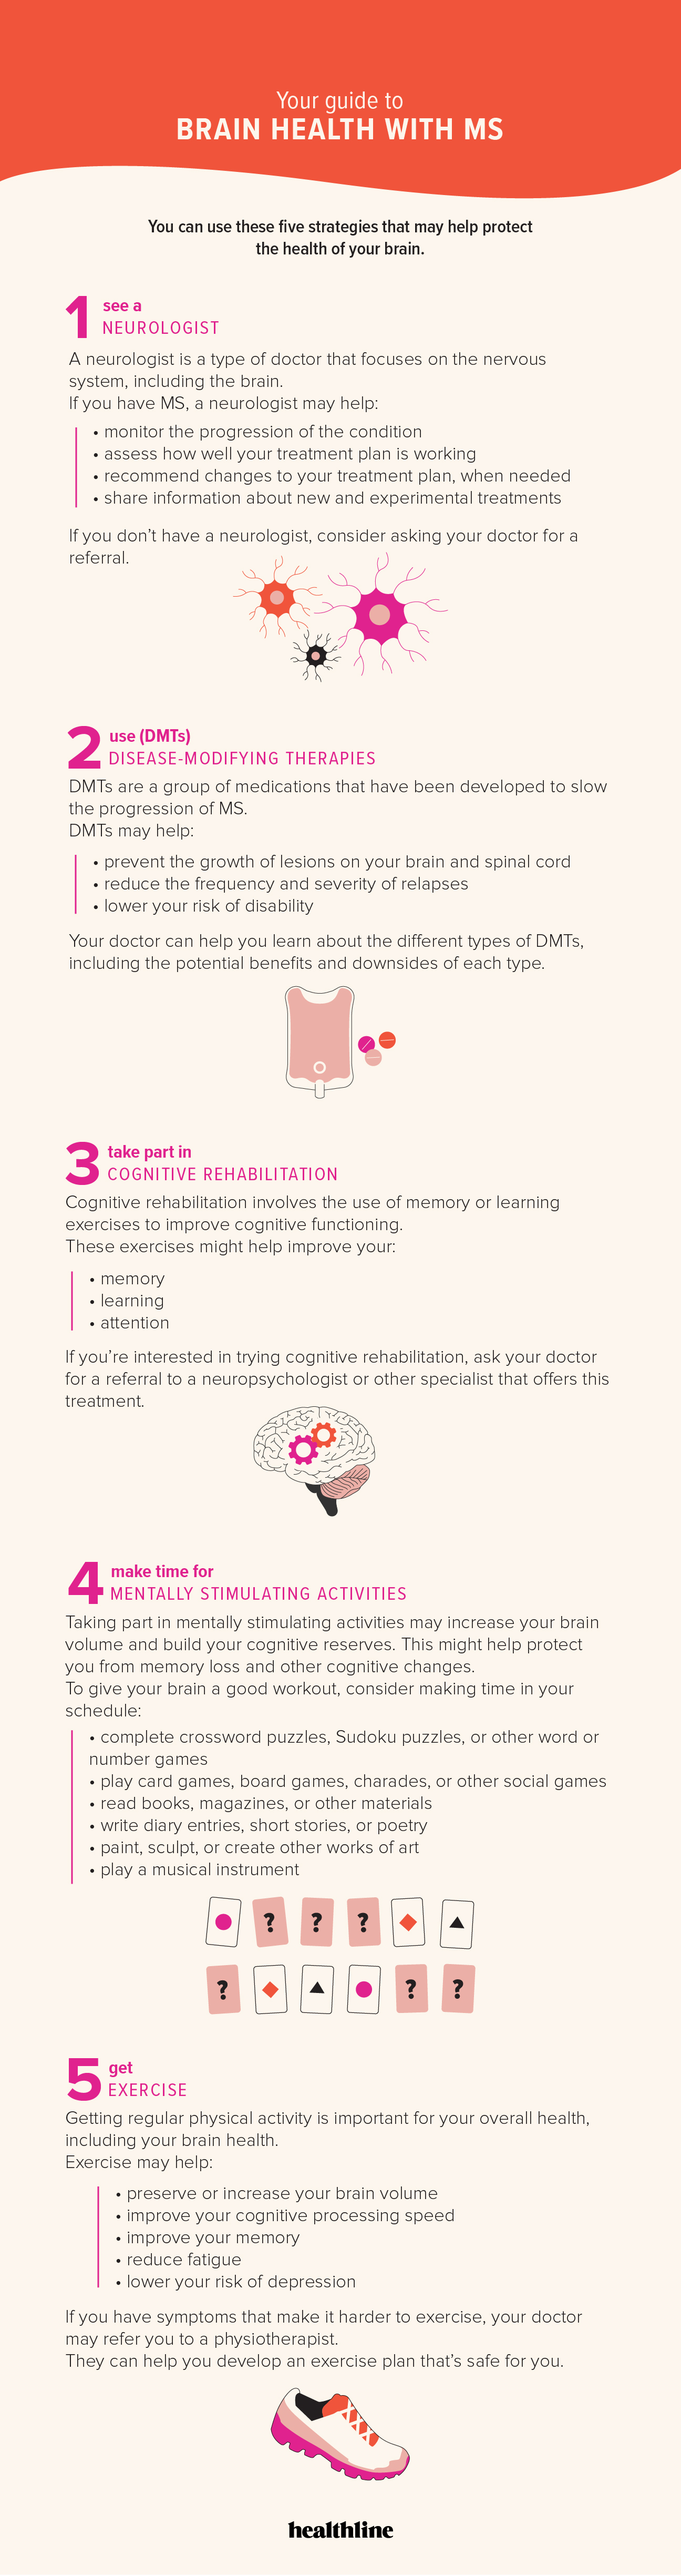 Tips for Maintaining Brain Health with MS